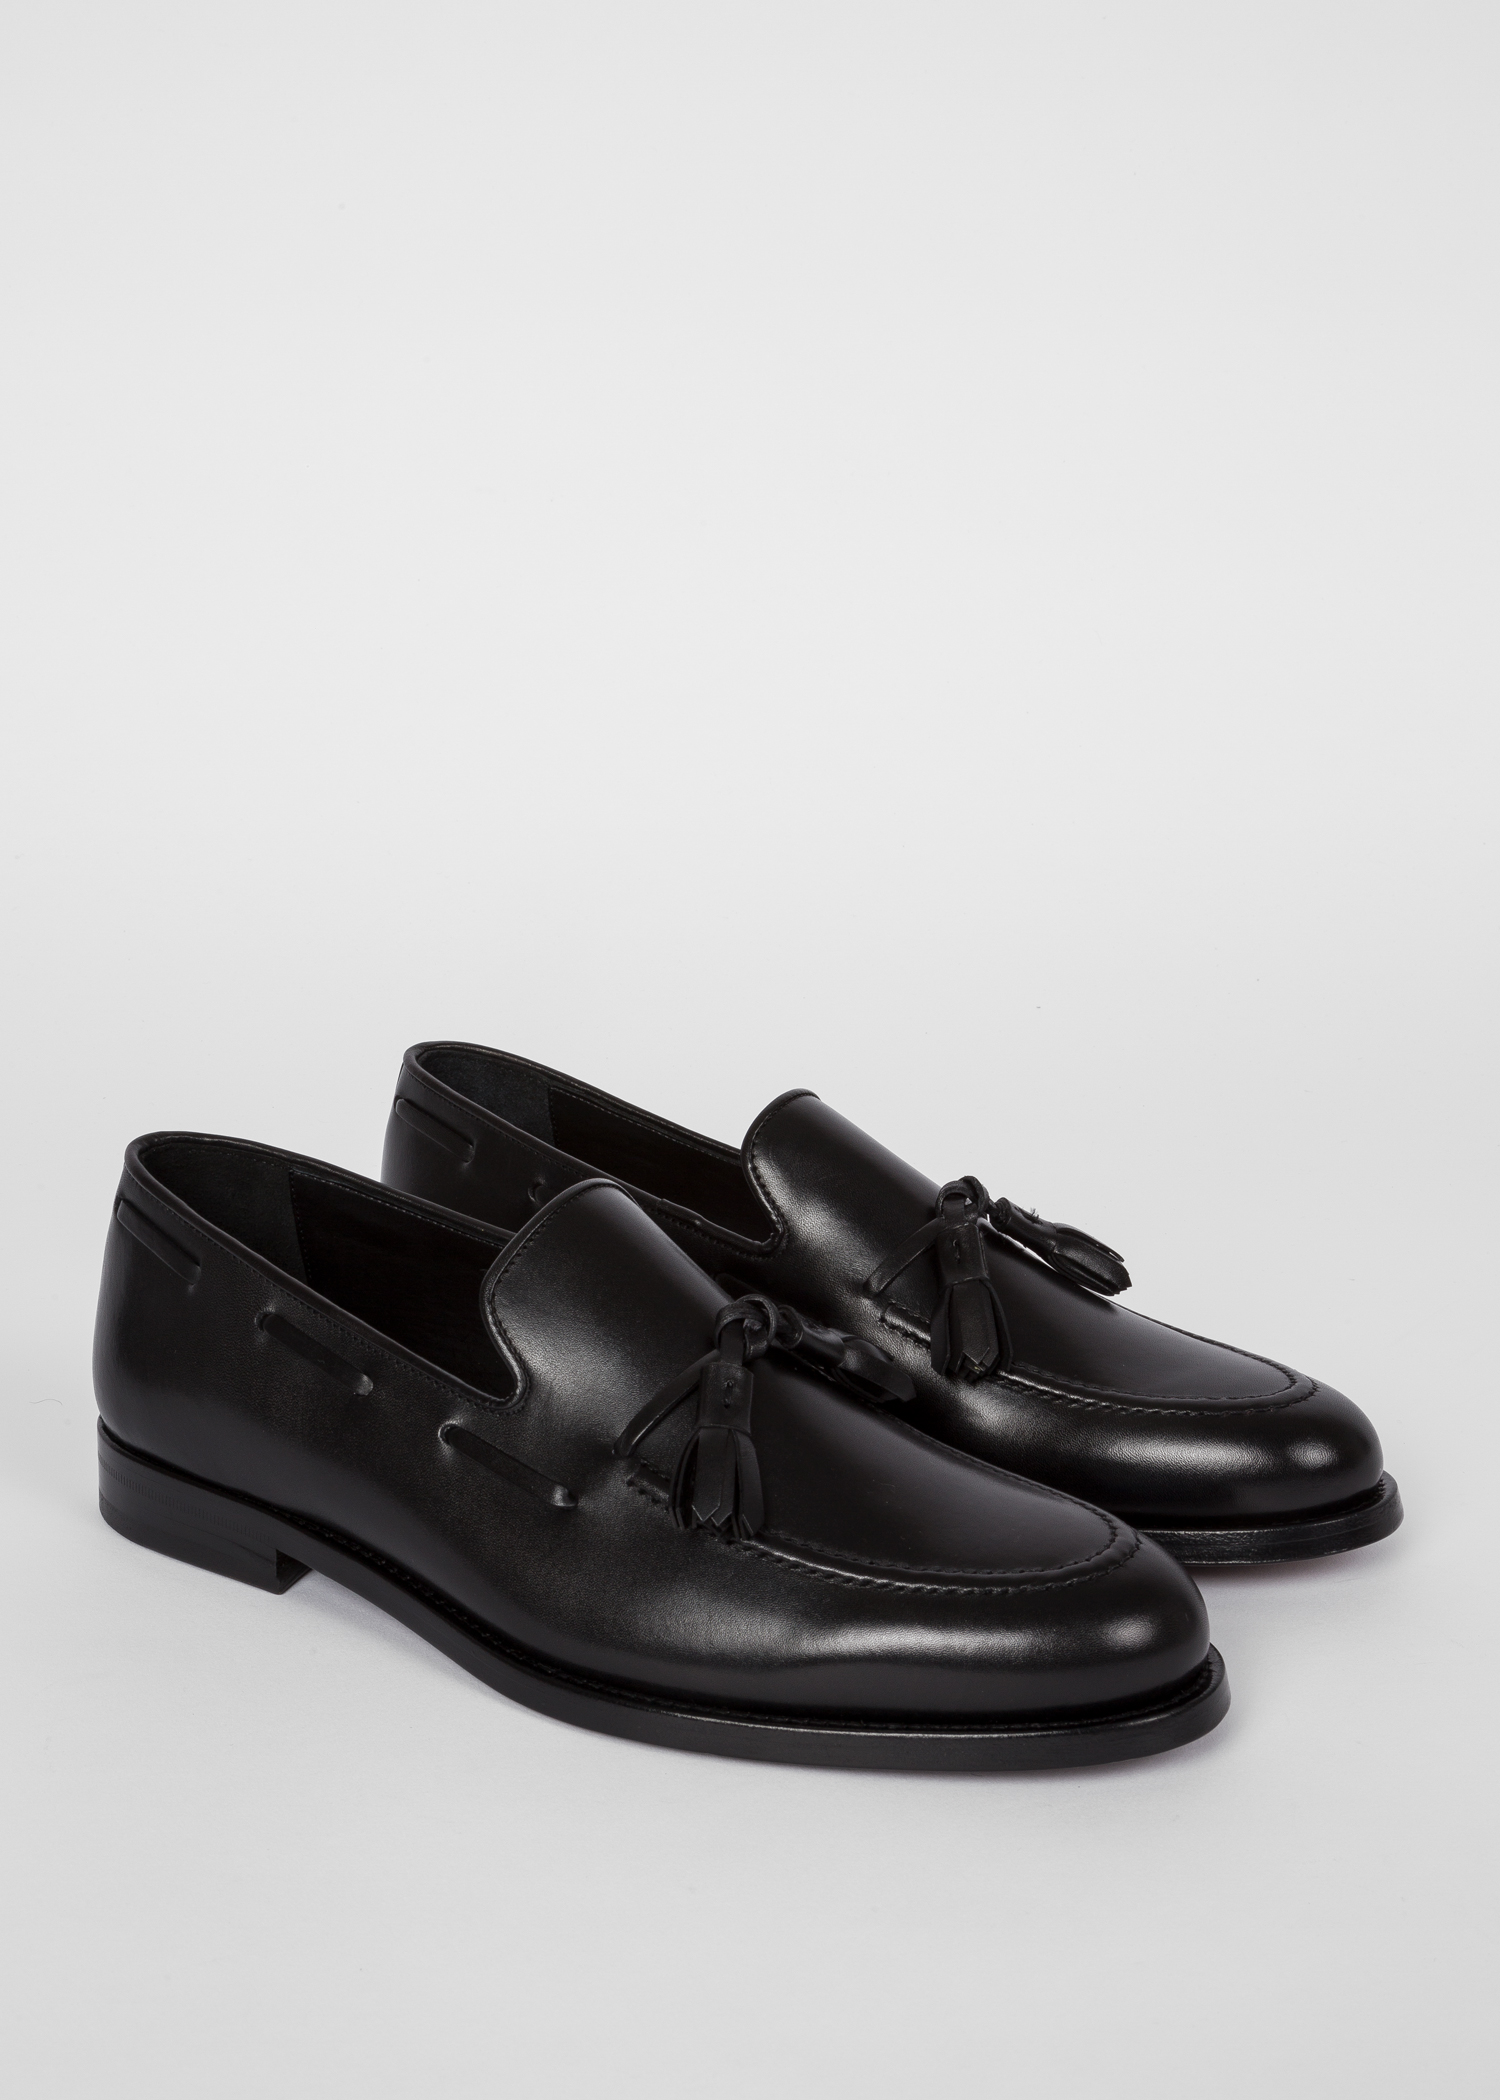 879eaa978c3 Angled side view - Men s Black Leather  Larry  Tasseled Loafers Paul Smith